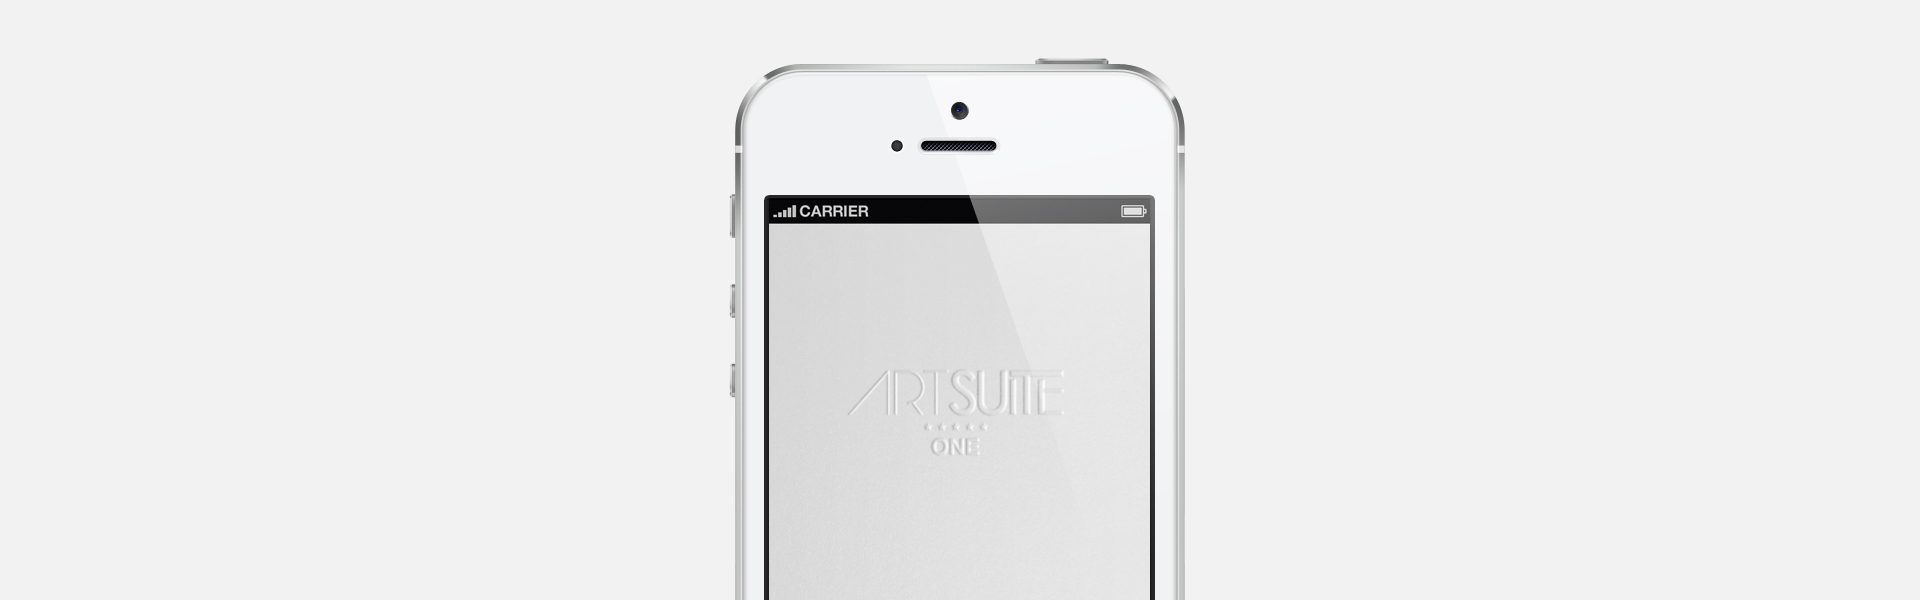 arstuite_iphone1